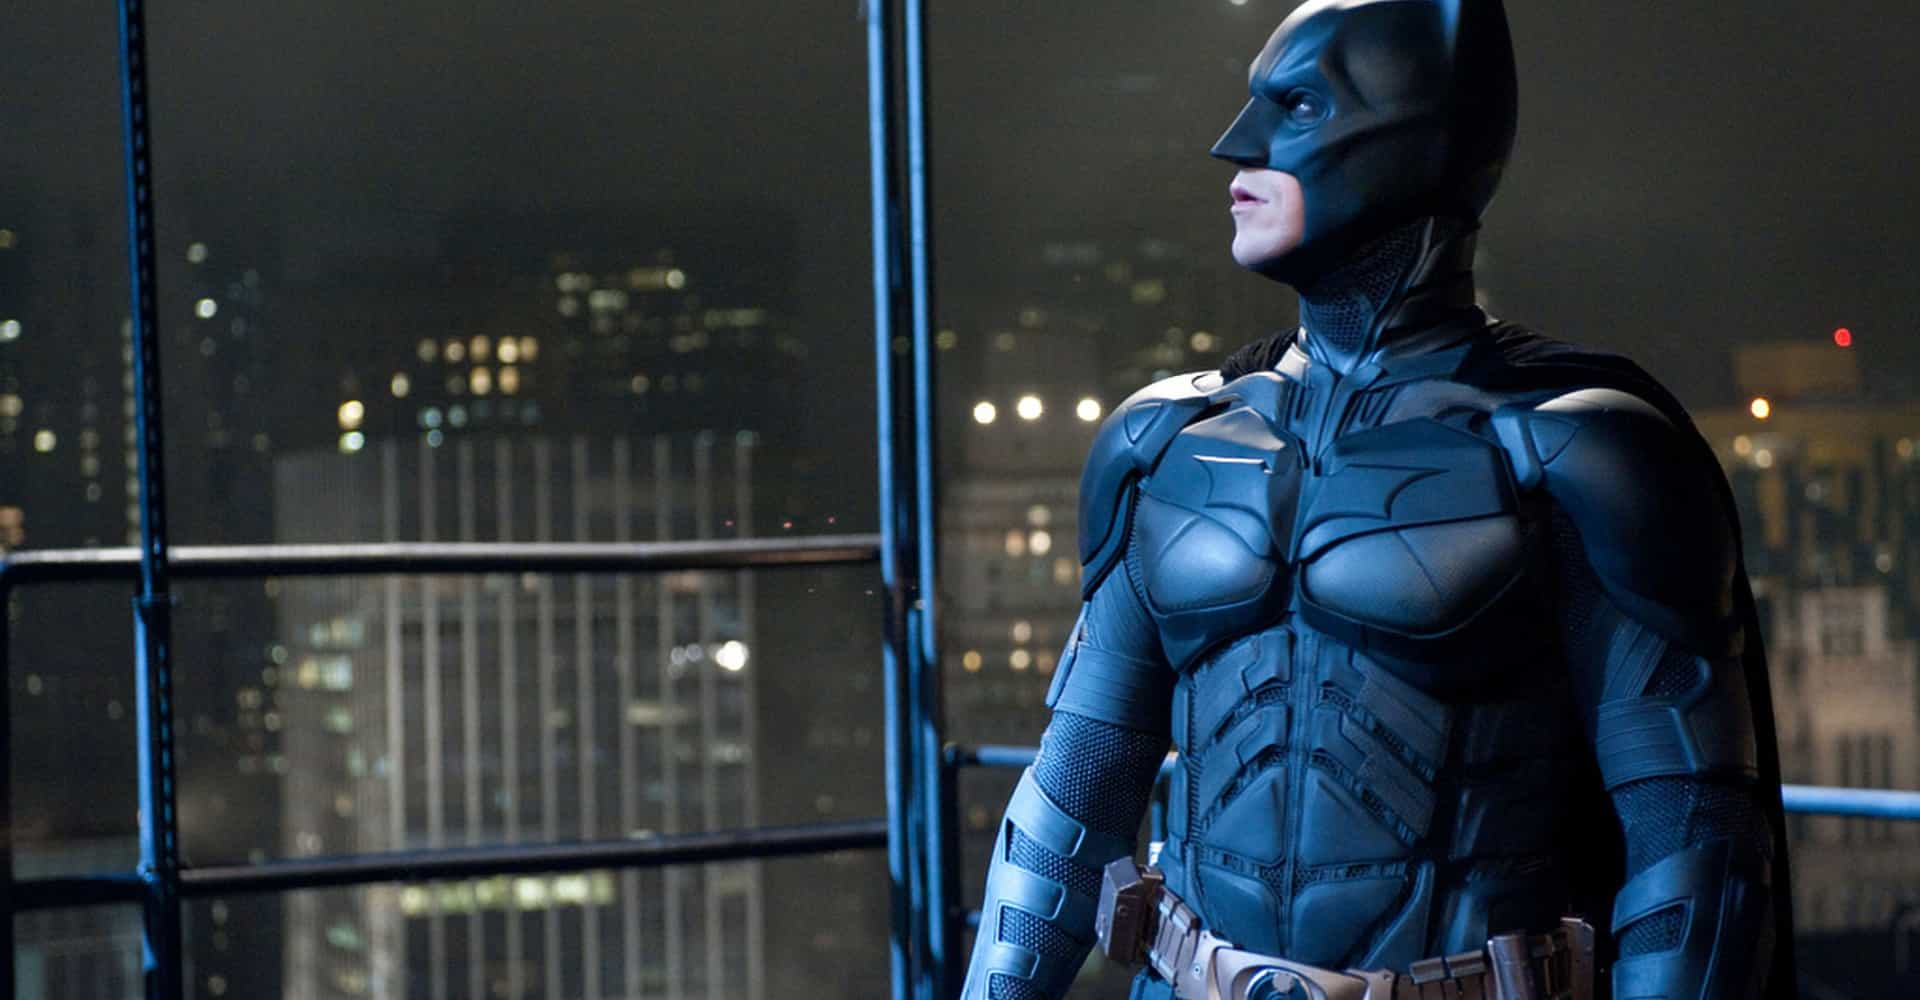 The Dark Knight turns 10: all the behind-the-scenes secrets